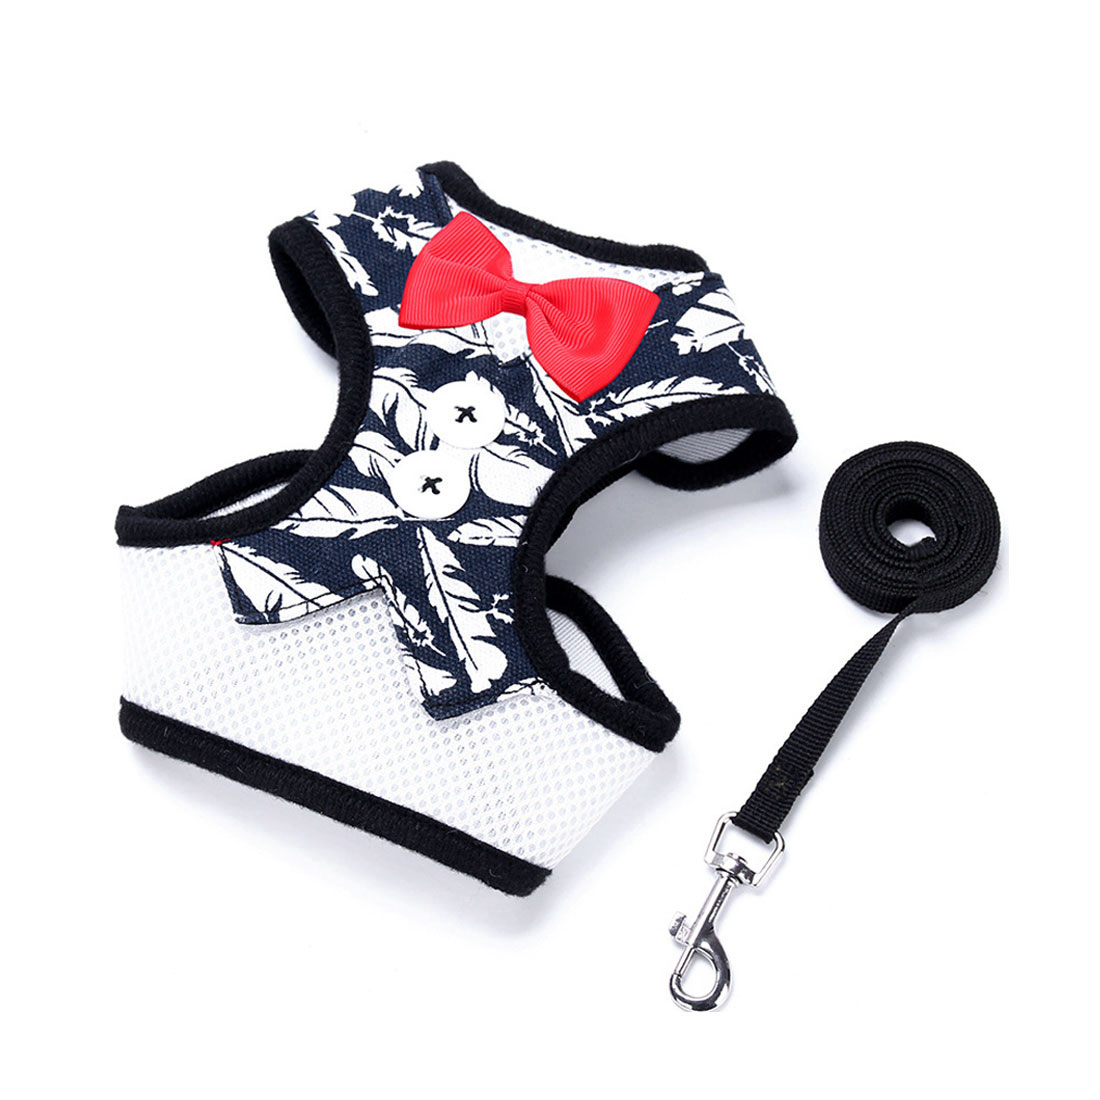 Adjustable Padded Small Dog Harness Breathable Dog Vest Bowtie Gentleman Suit Navy Feather M